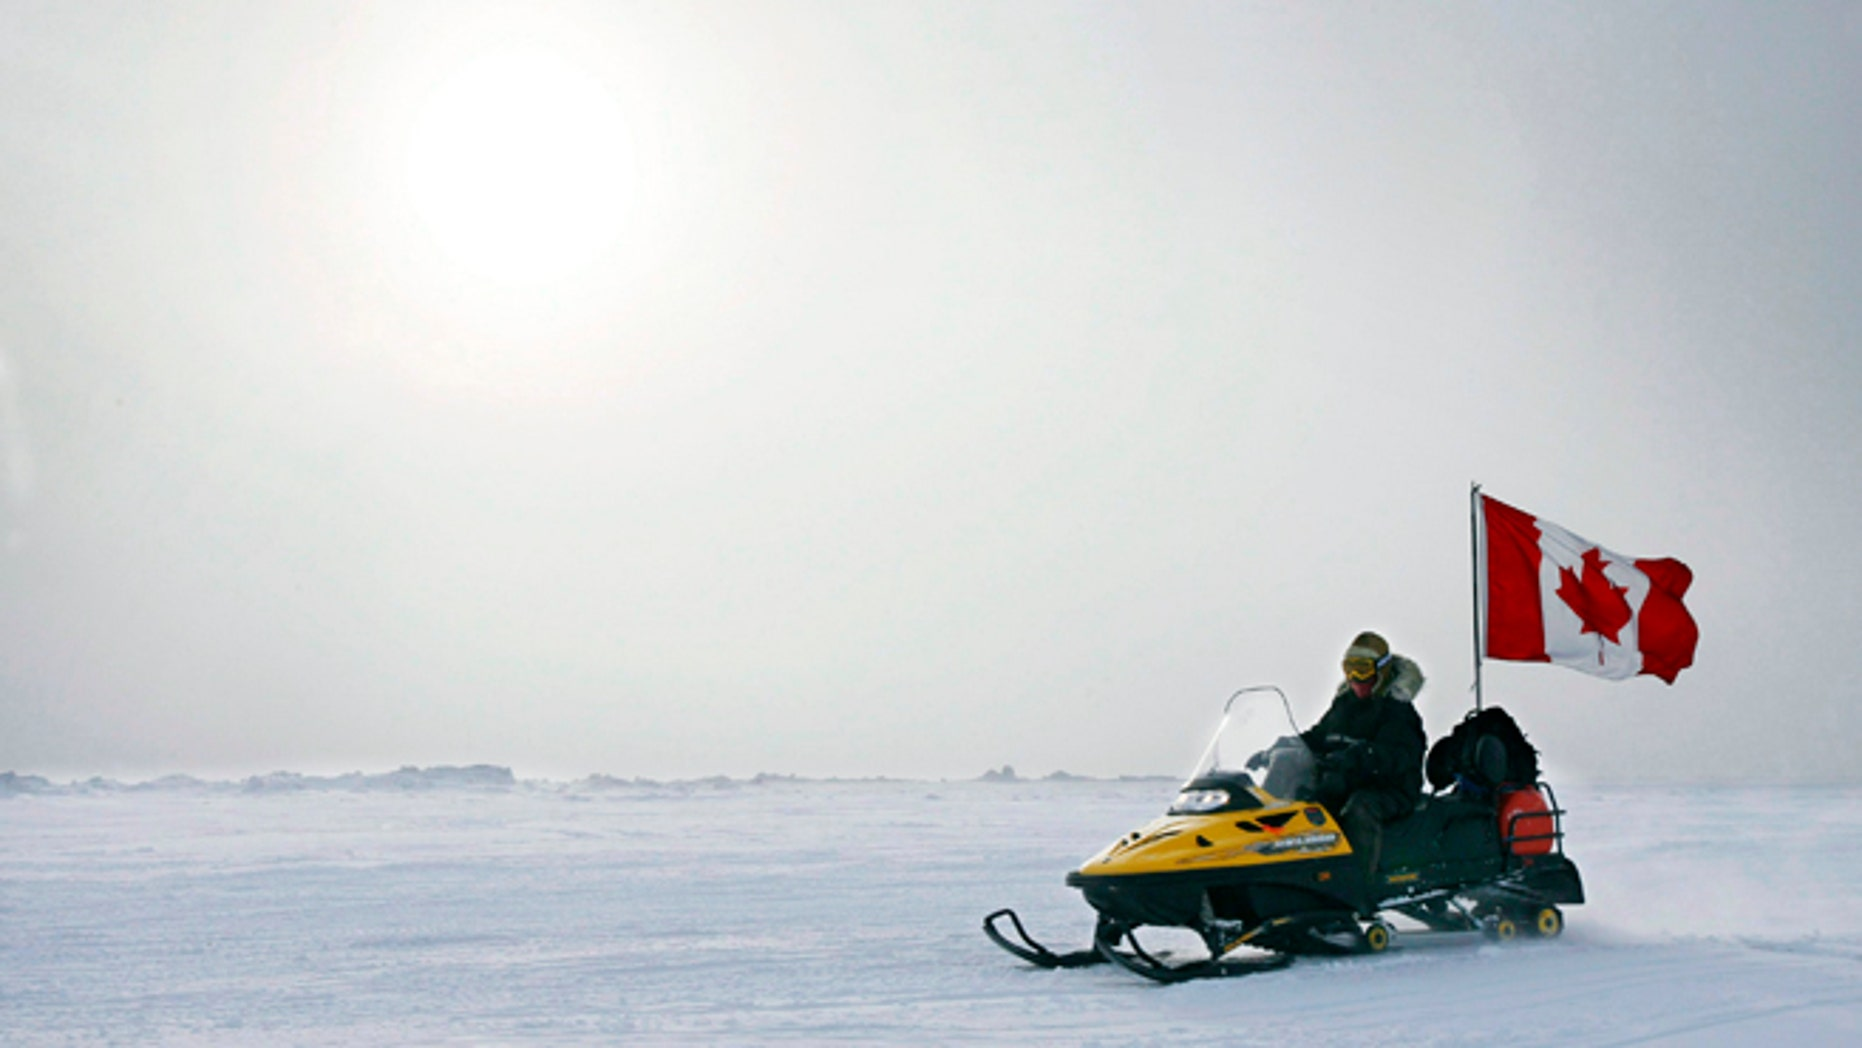 In this March 31, 2007 photo, Ranger Joe Amarualik, from Iqaluit, Nunavut, drives his snowmobile on the ice during a Canadian Ranger sovereignty patrol near Eureka, on Ellesmere Island, Nunavut. Canada plans to make a claim to the North Pole in an effort to assert its sovereignty in the resource-rich Arctic, the country's foreign affairs minister said Monday, Dec. 9, 2013.